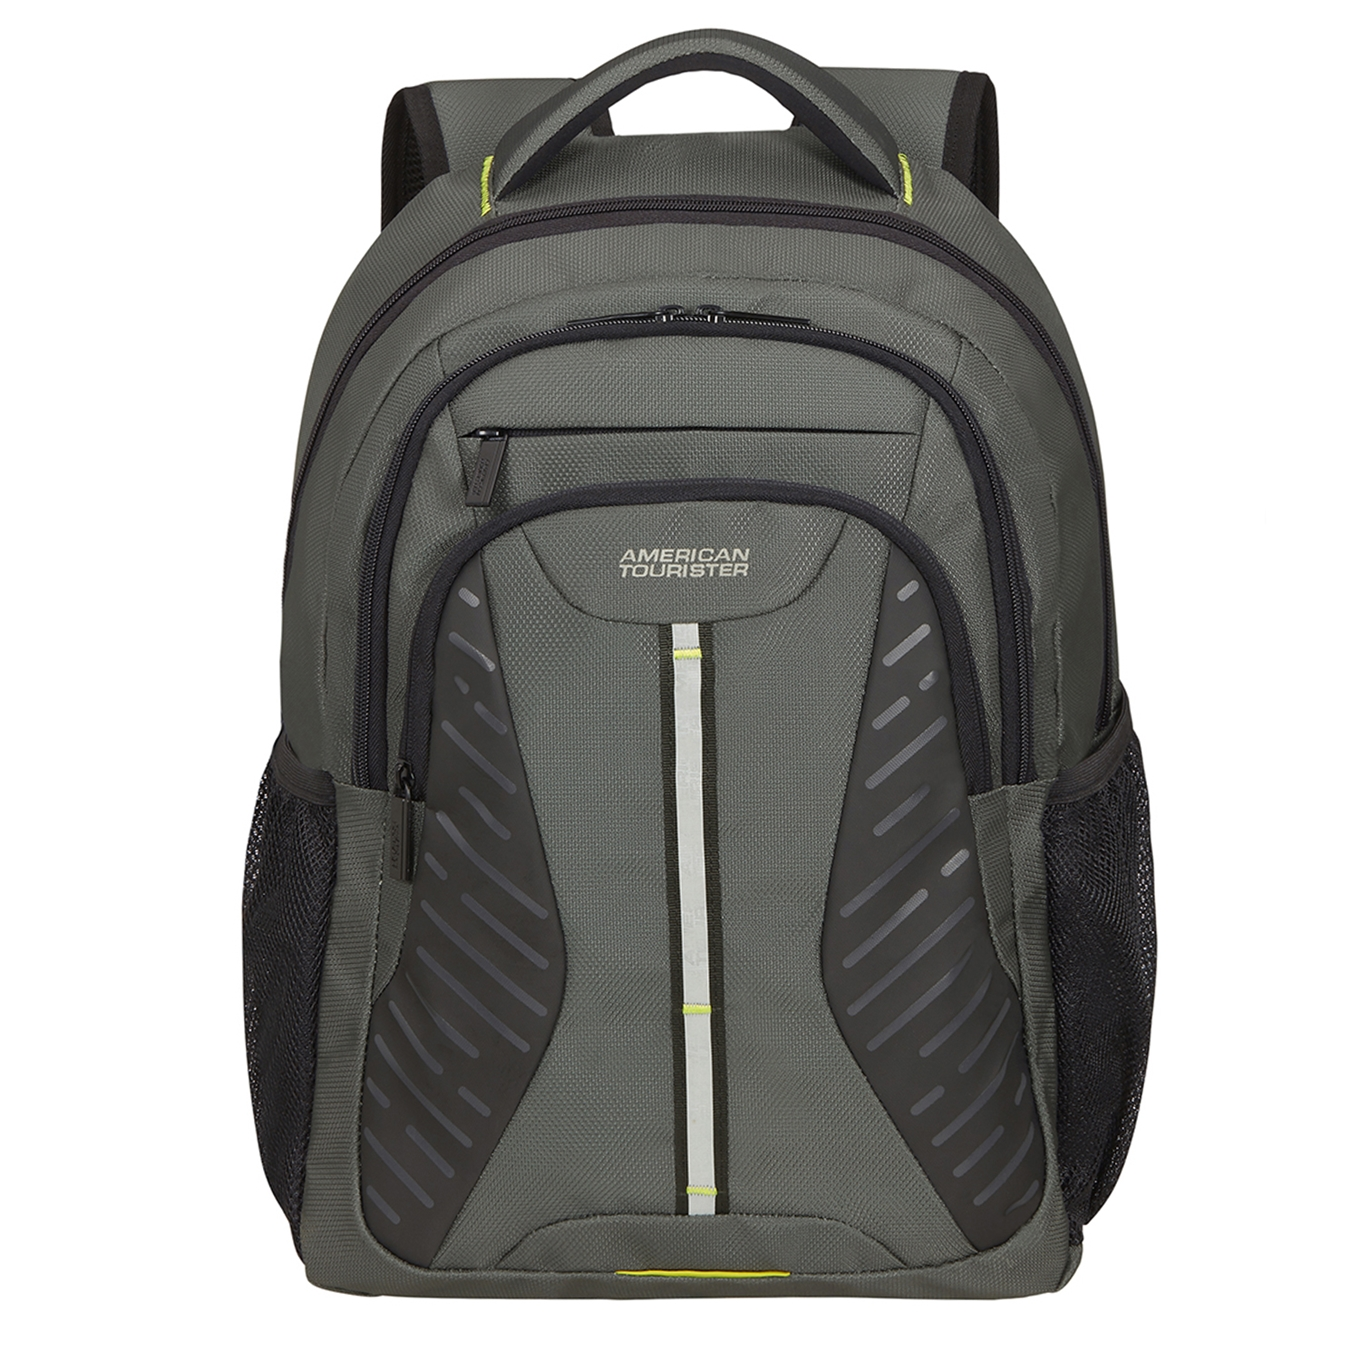 American Tourister At Work Laptop Backpack 15.6'' Reflect shadow grey